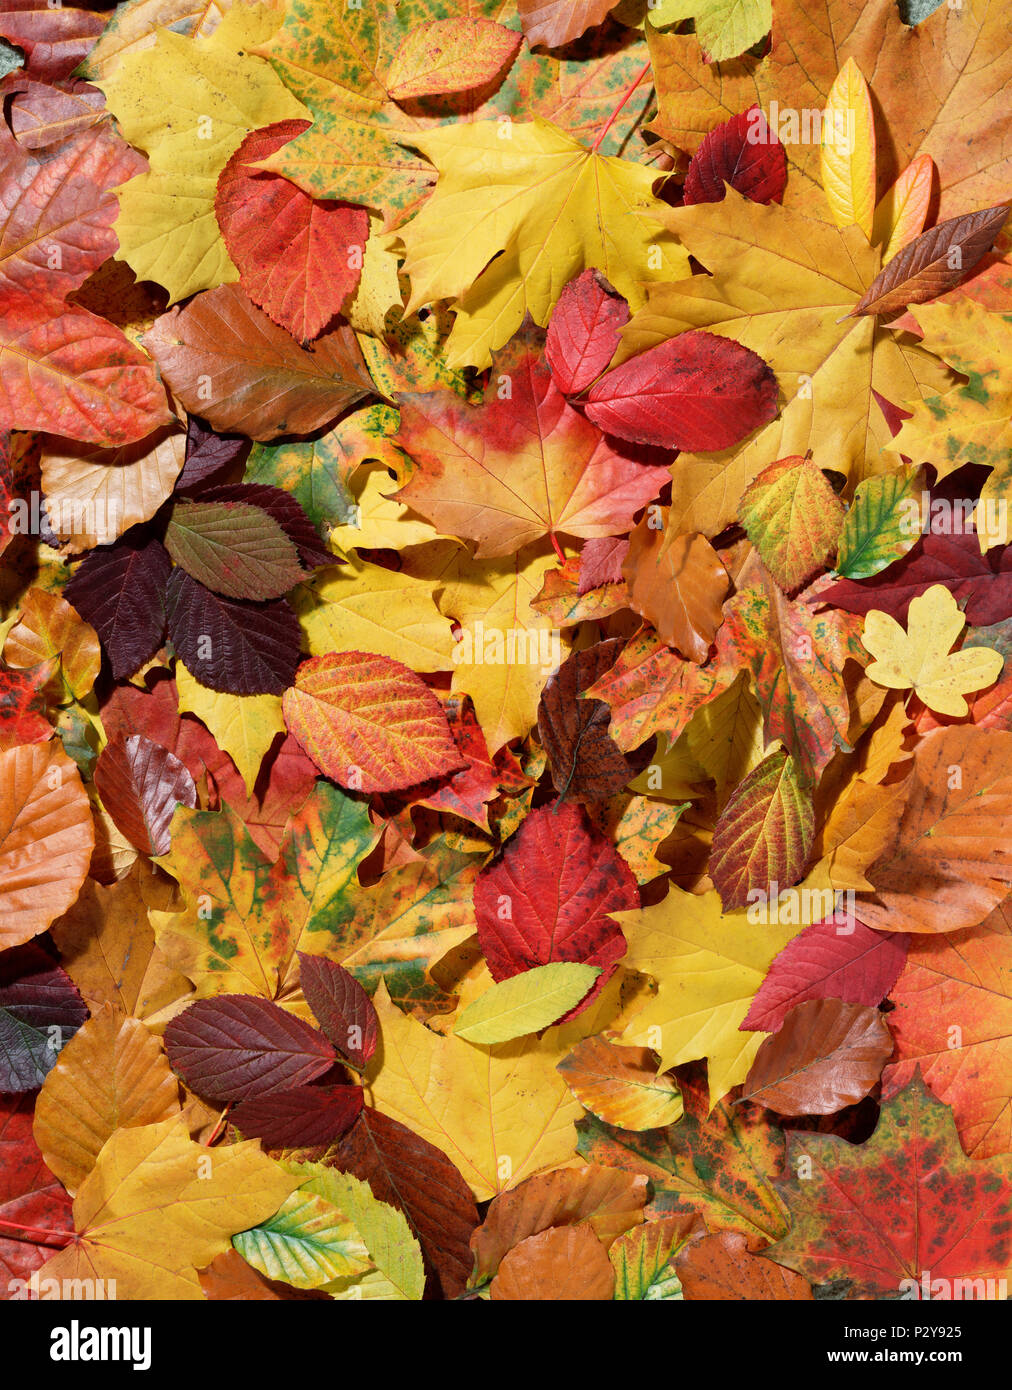 Close Up Of Autumn Fall Leaves Forest Floor Stock Photo Alamy